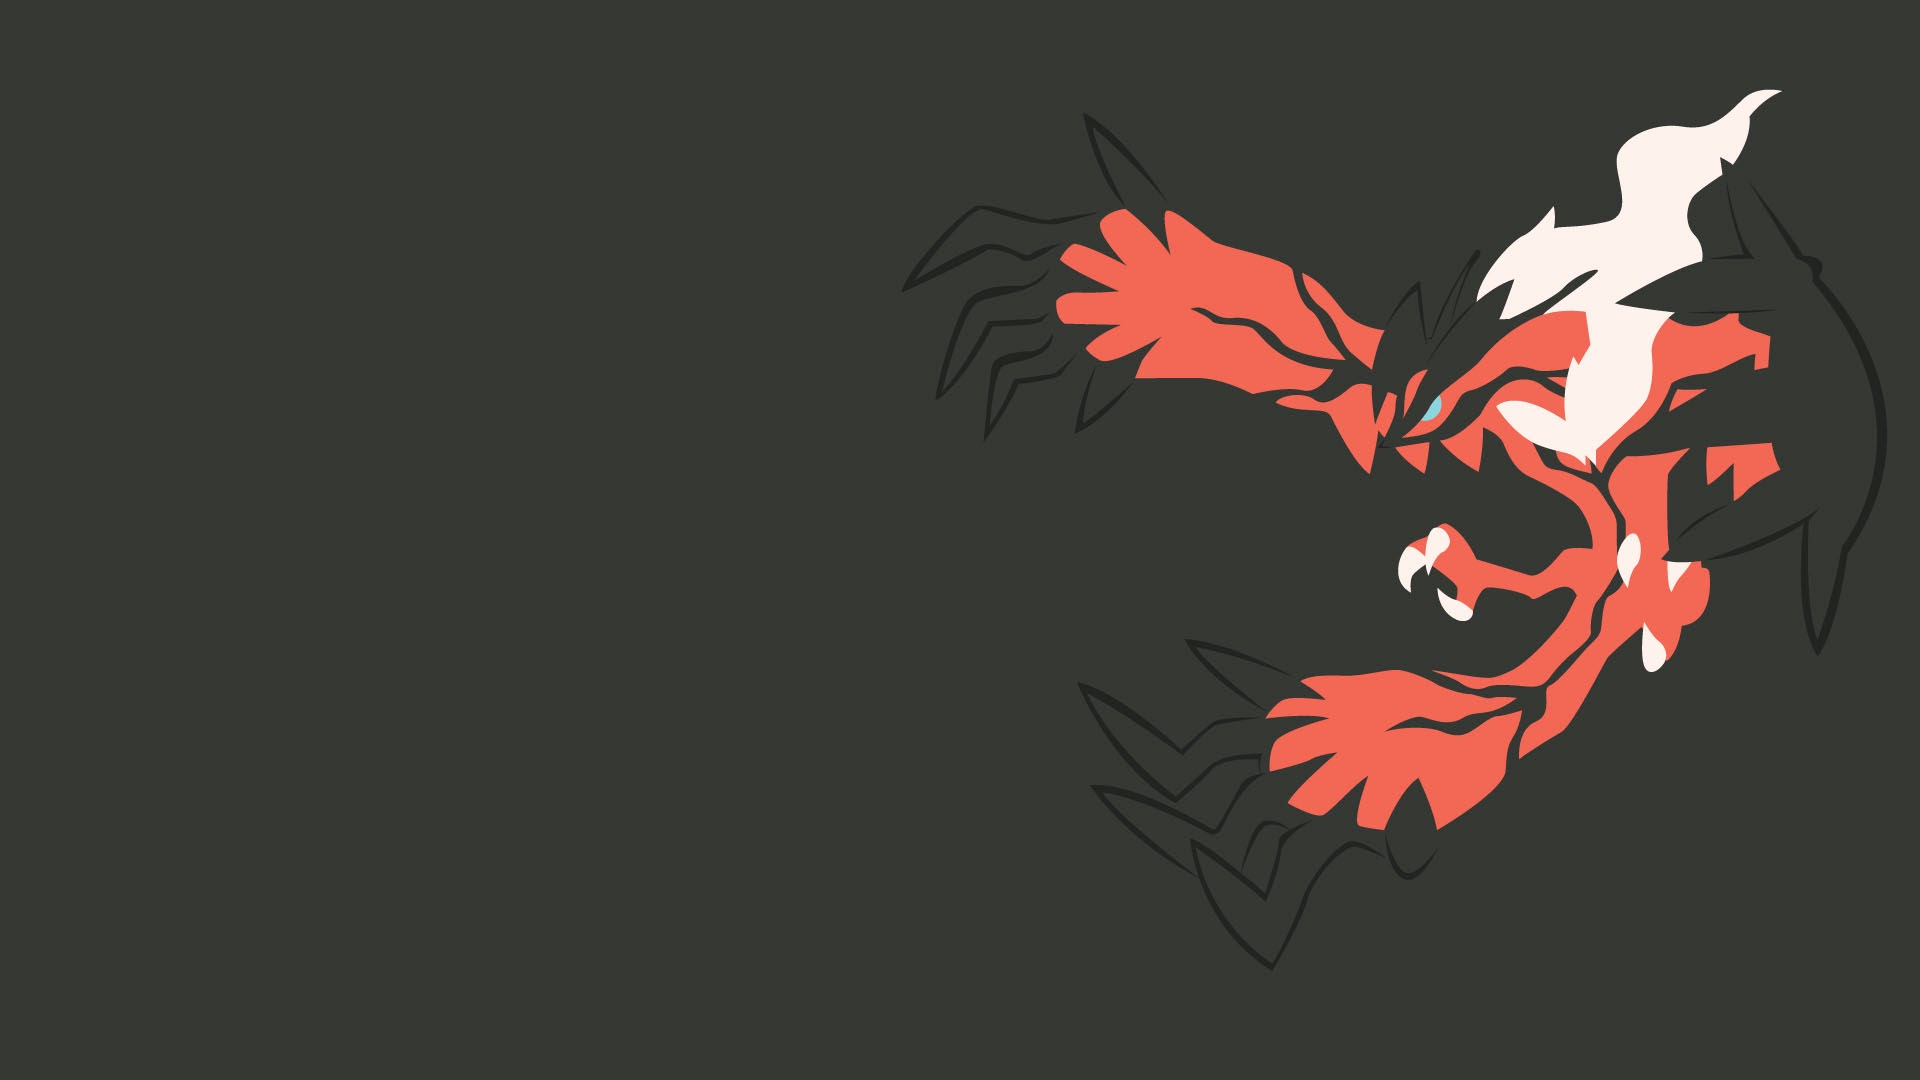 Yveltal Legendary Pokemon X Y Anime Hd Wallpaper 1920x1080 A299